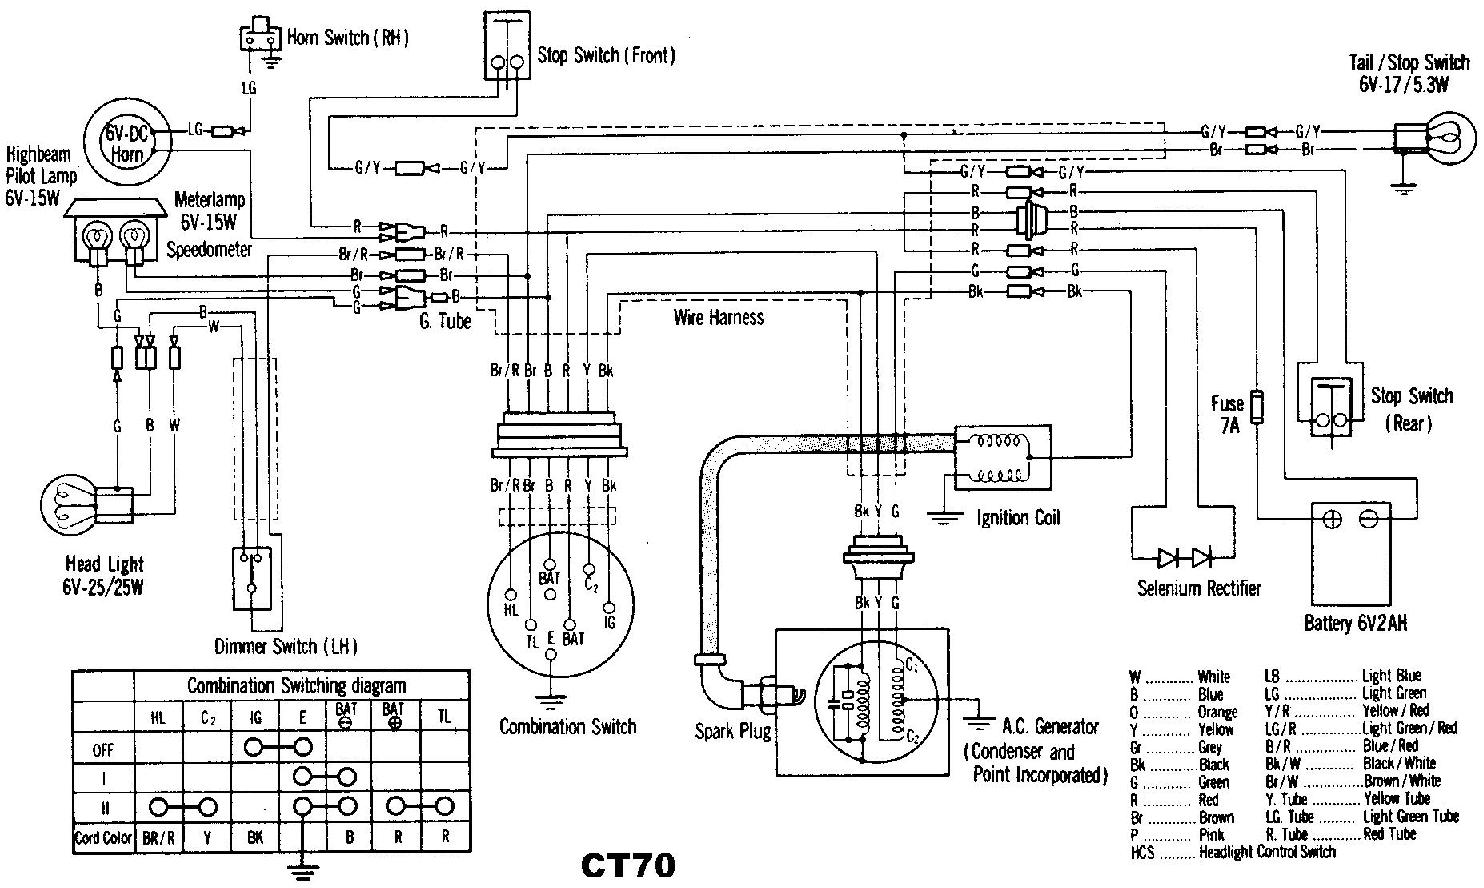 dratv_2269_123803613 honda ct70 k0 wiring diagram honda wiring diagrams instruction mercruiser alpha one wiring diagram at honlapkeszites.co